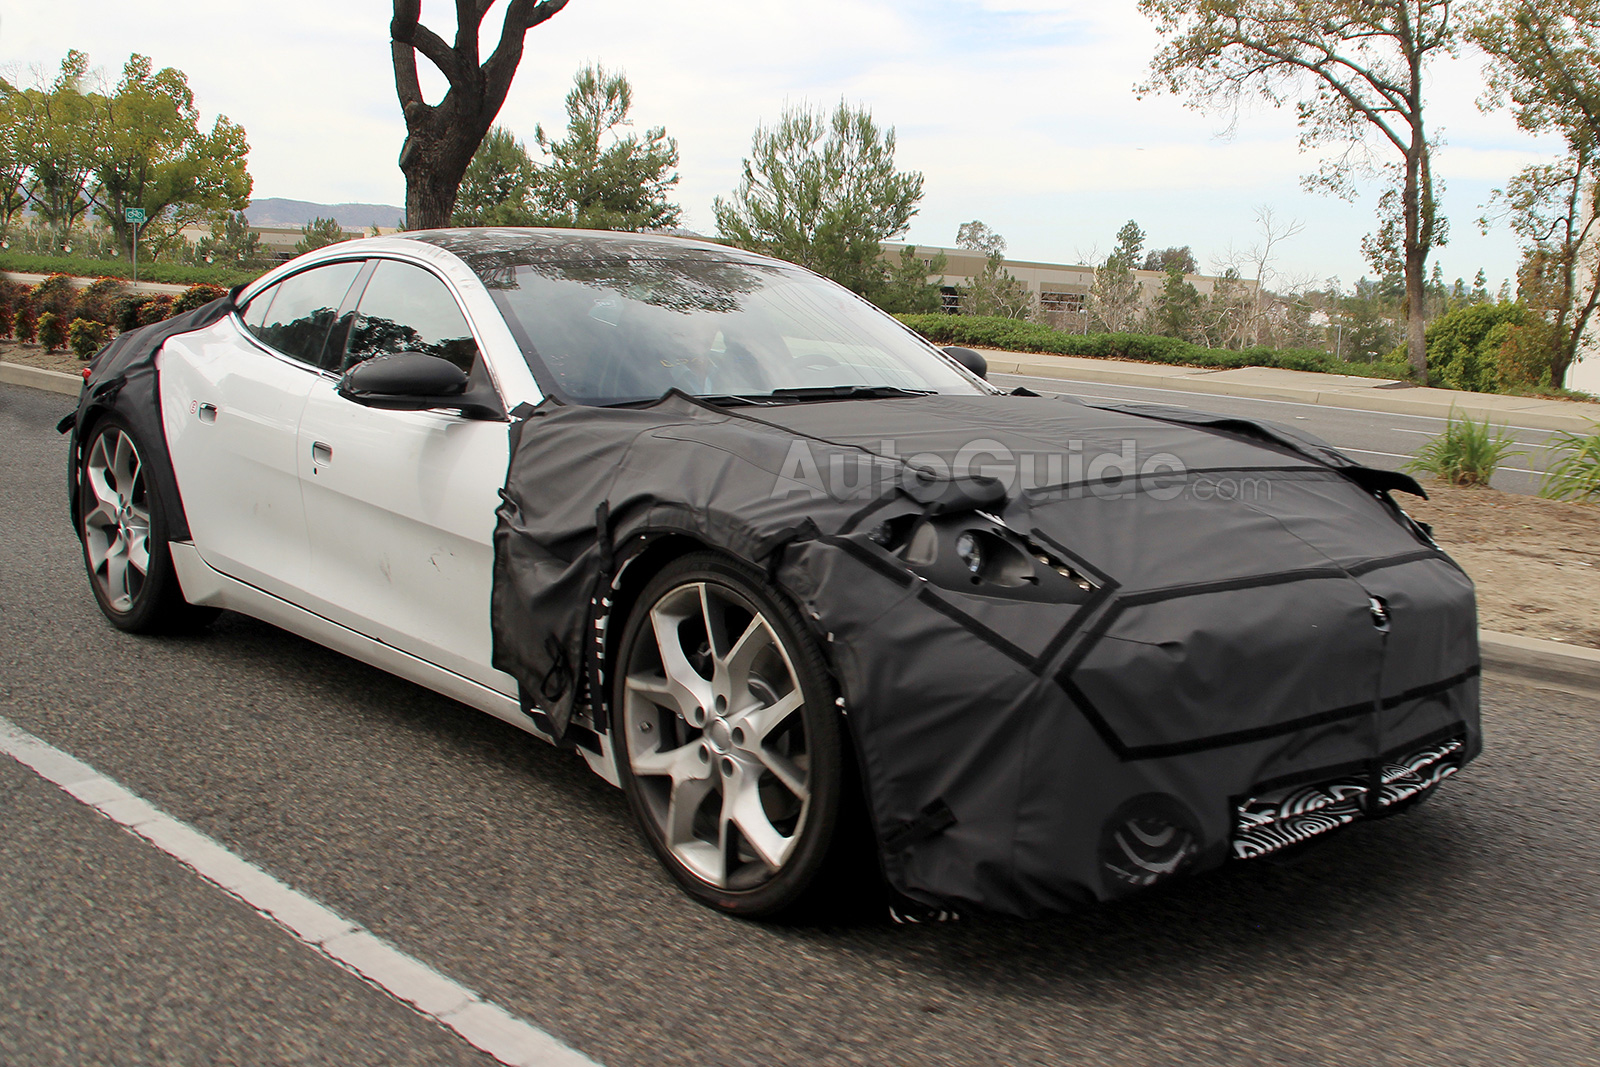 2020 Karma Revero Spied Lurking The Streets Of Southern